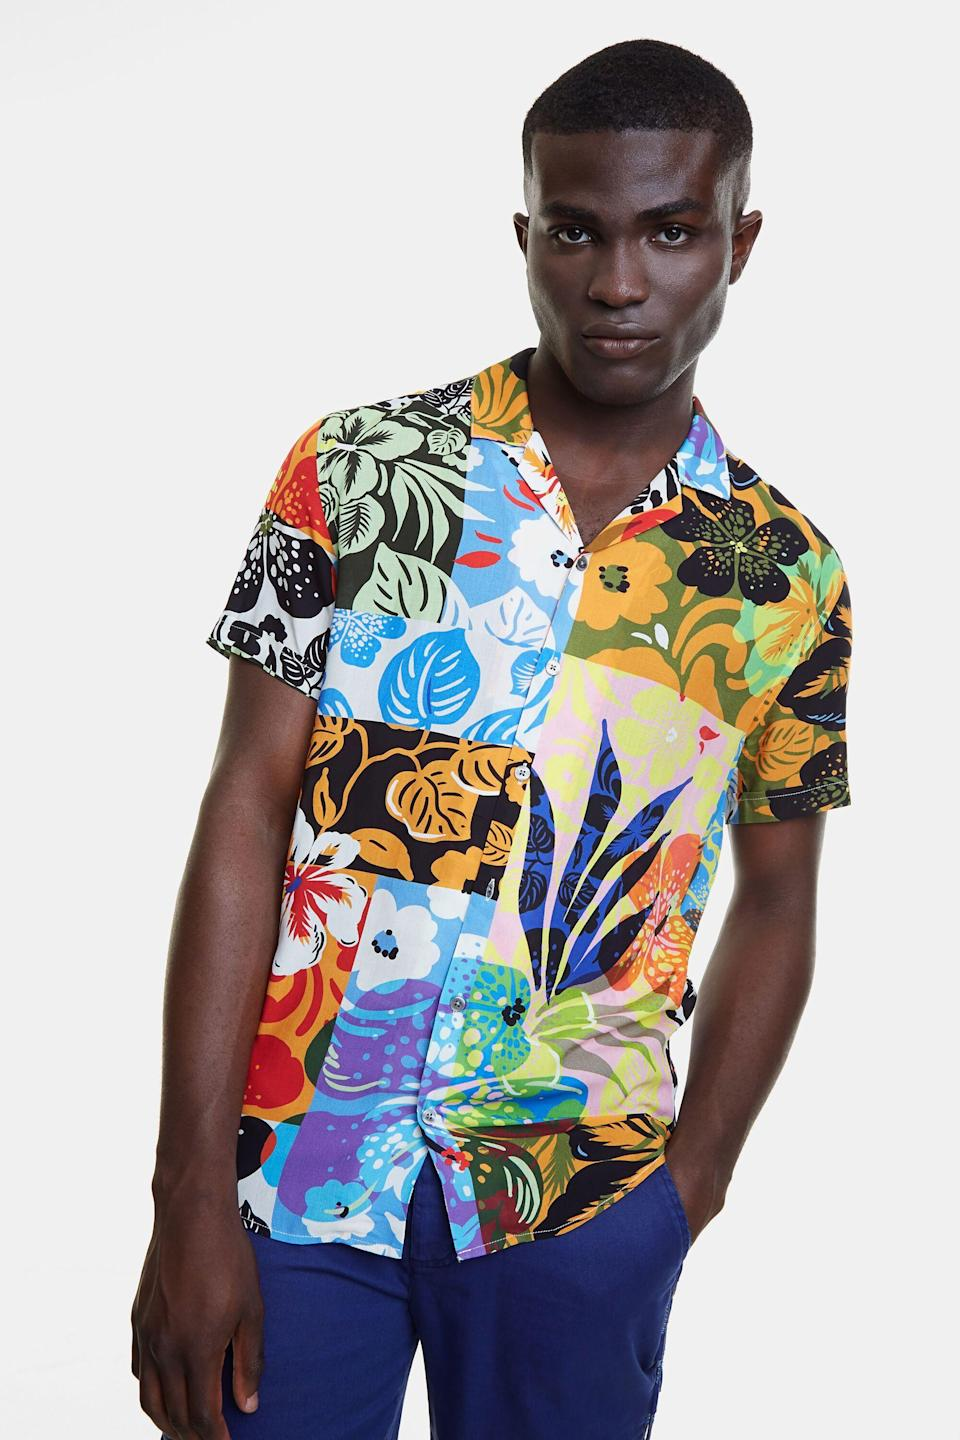 """<p><strong>Desigual</strong></p><p>desigual.com</p><p><strong>$57.98</strong></p><p><a href=""""https://go.redirectingat.com?id=74968X1596630&url=https%3A%2F%2Fwww.desigual.com%2Fen_US%2F20SMCW215054S.html&sref=https%3A%2F%2Fwww.seventeen.com%2Flife%2Ffriends-family%2Fg27570560%2Fgifts-for-dad%2F"""" rel=""""nofollow noopener"""" target=""""_blank"""" data-ylk=""""slk:Shop Now"""" class=""""link rapid-noclick-resp"""">Shop Now</a></p><p>Up his """"dad shirt"""" game with a trendy short sleeve button up. The artsy floral print will make even is oldest pair of <a href=""""https://go.redirectingat.com?id=74968X1596630&url=https%3A%2F%2Fwww.birkenstock.com%2Fus&sref=https%3A%2F%2Fwww.seventeen.com%2Flife%2Ffriends-family%2Fg27570560%2Fgifts-for-dad%2F"""" rel=""""nofollow noopener"""" target=""""_blank"""" data-ylk=""""slk:Birkenstocks"""" class=""""link rapid-noclick-resp"""">Birkenstocks</a> look cool.</p>"""